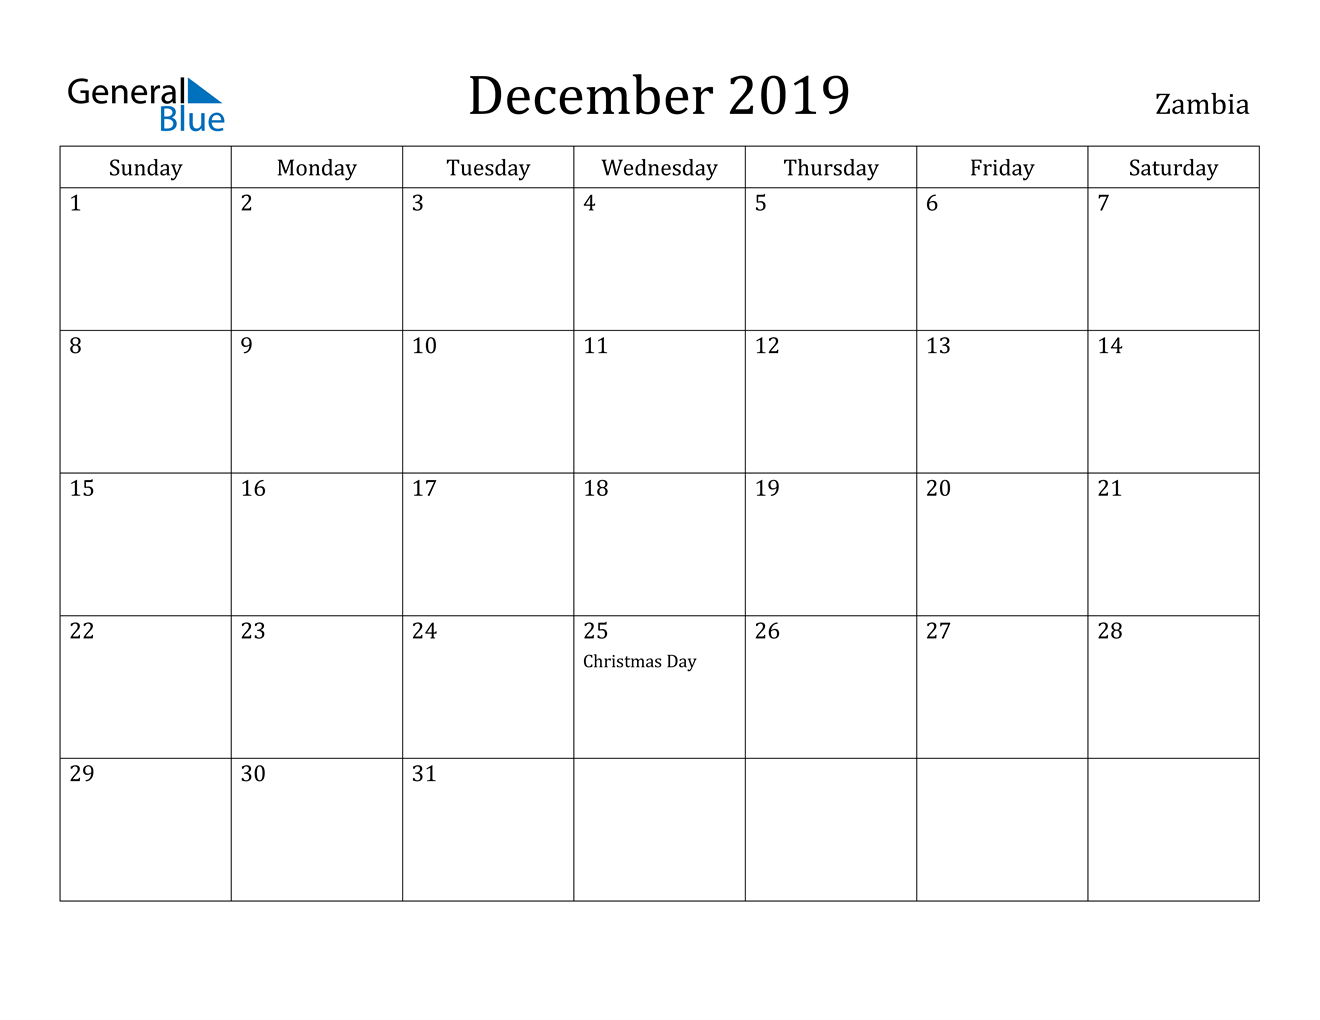 Image of December 2019 Zambia Calendar with Holidays Calendar